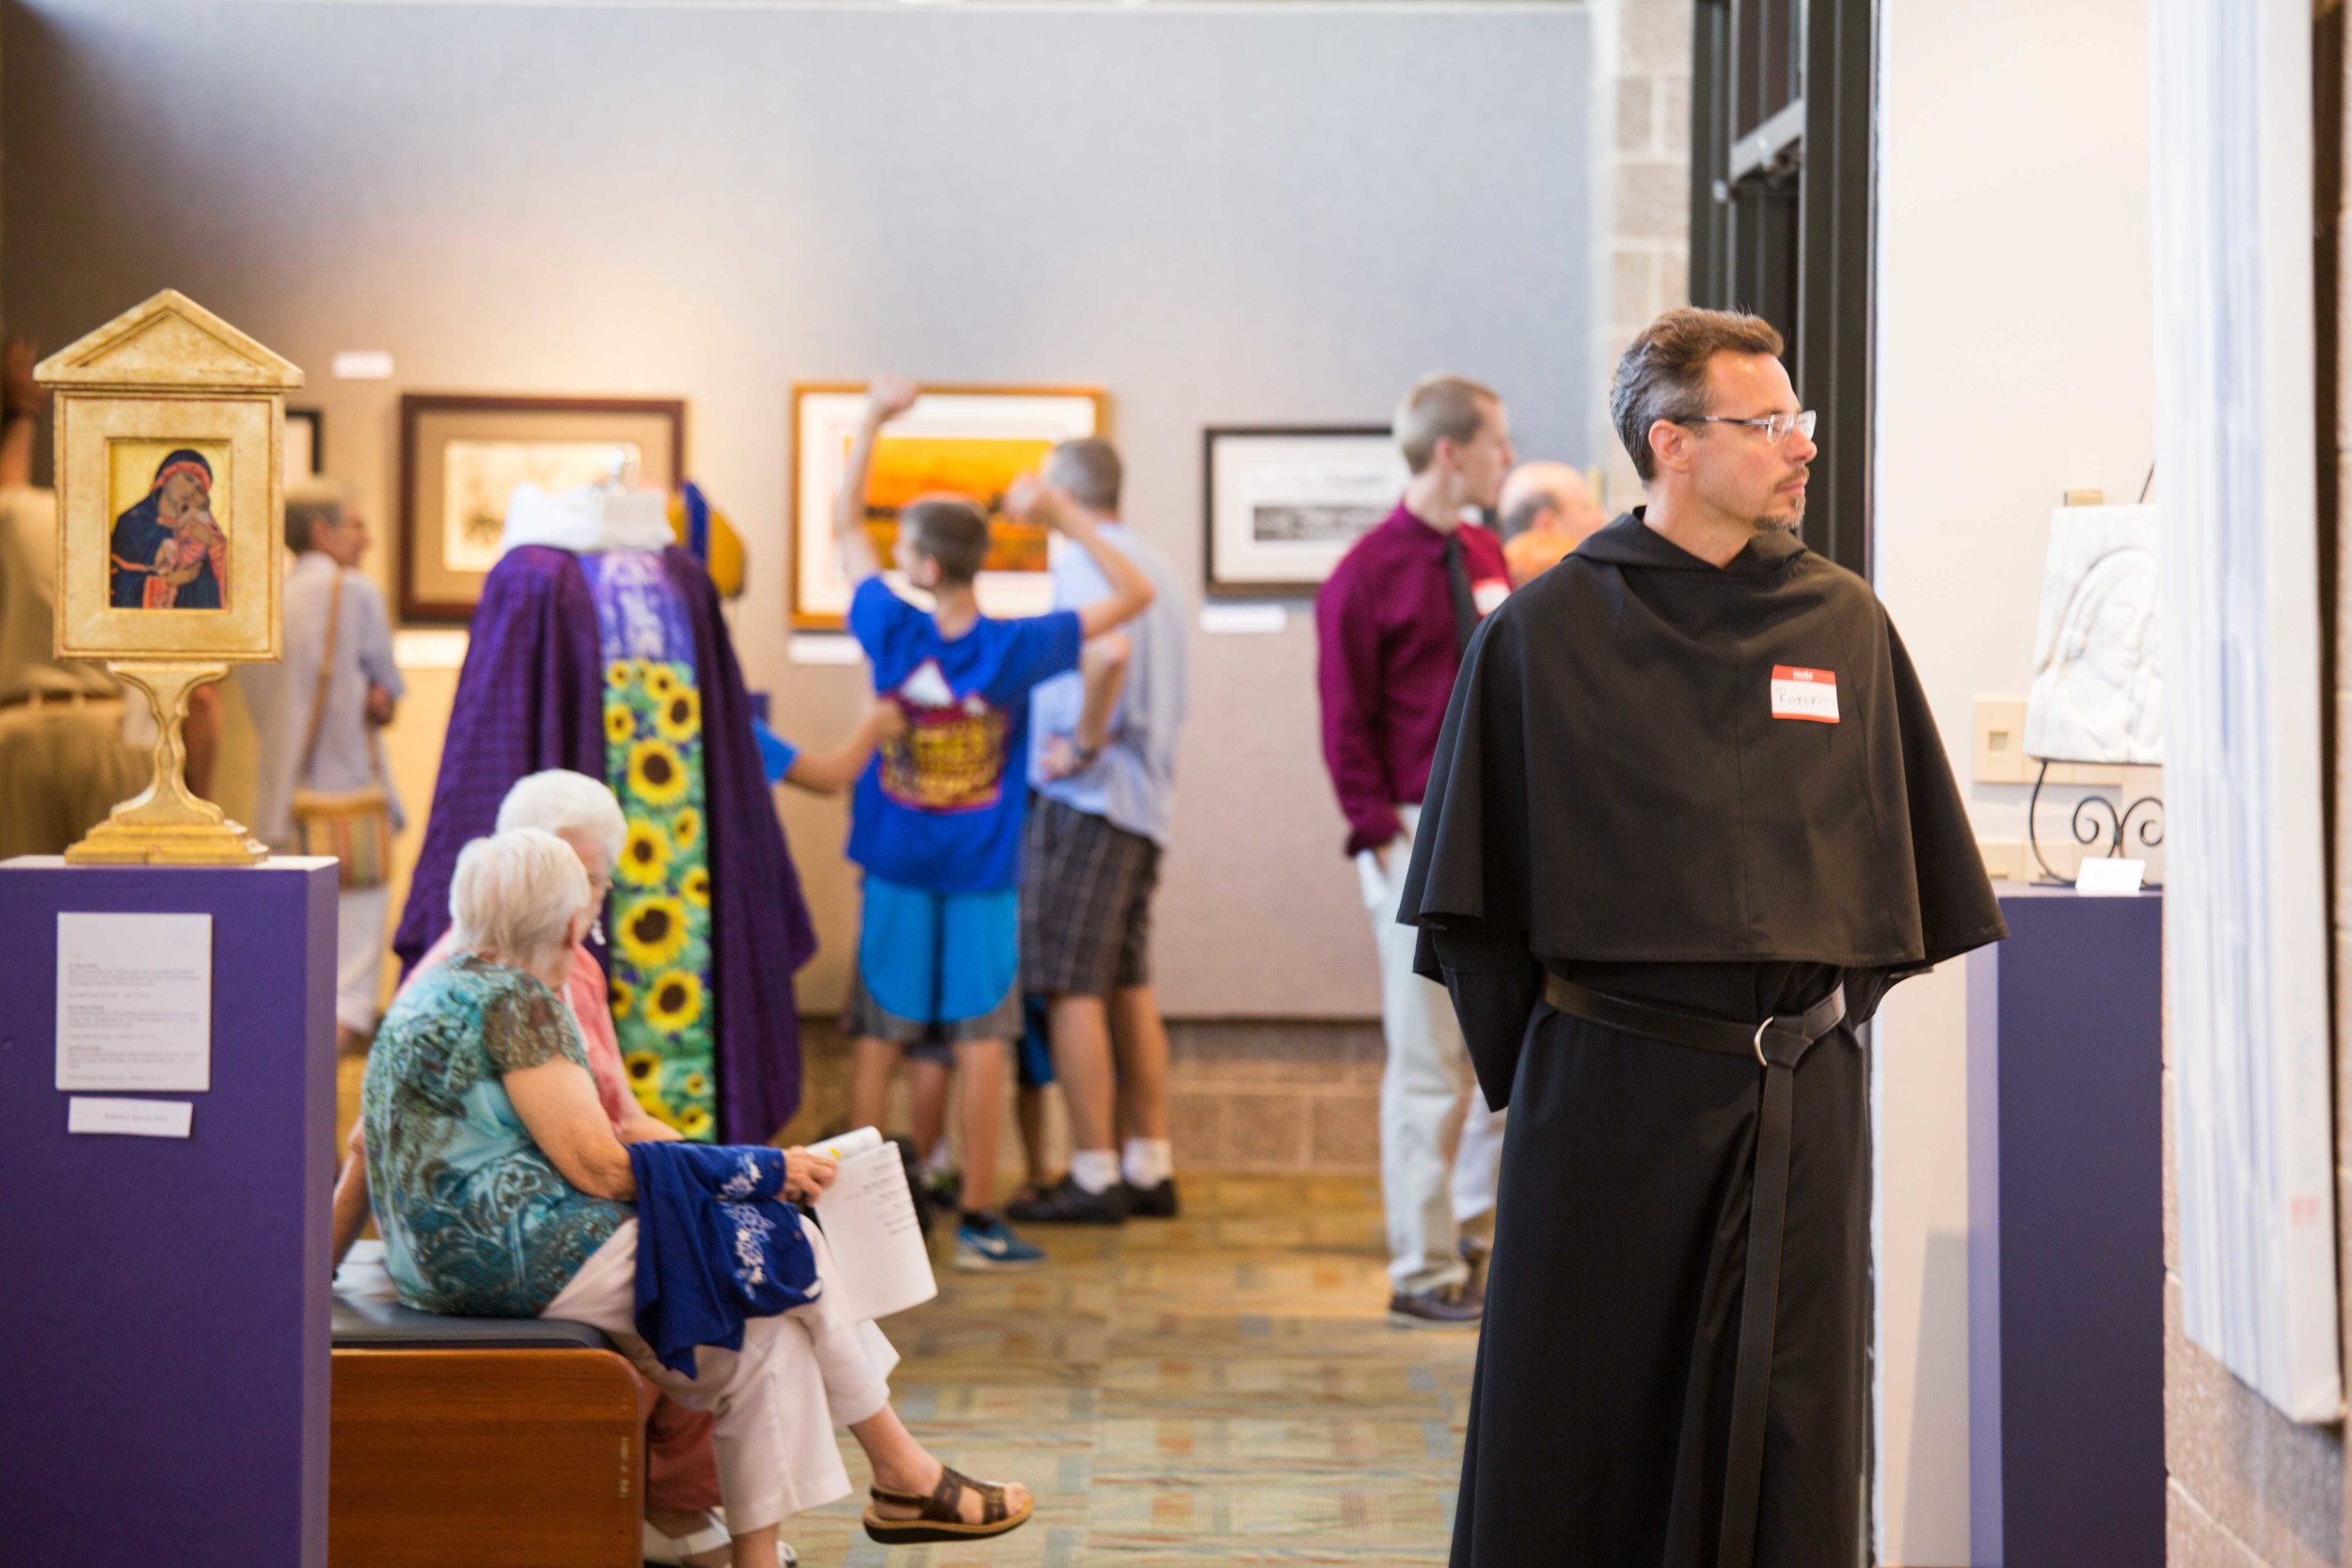 """Visitors to the Art Gallery during the """"A Day Celebrating Consecrated Life."""" At the left is an icon of the Madonna and a vestment, both done by Richard Canulli, O.S.A."""